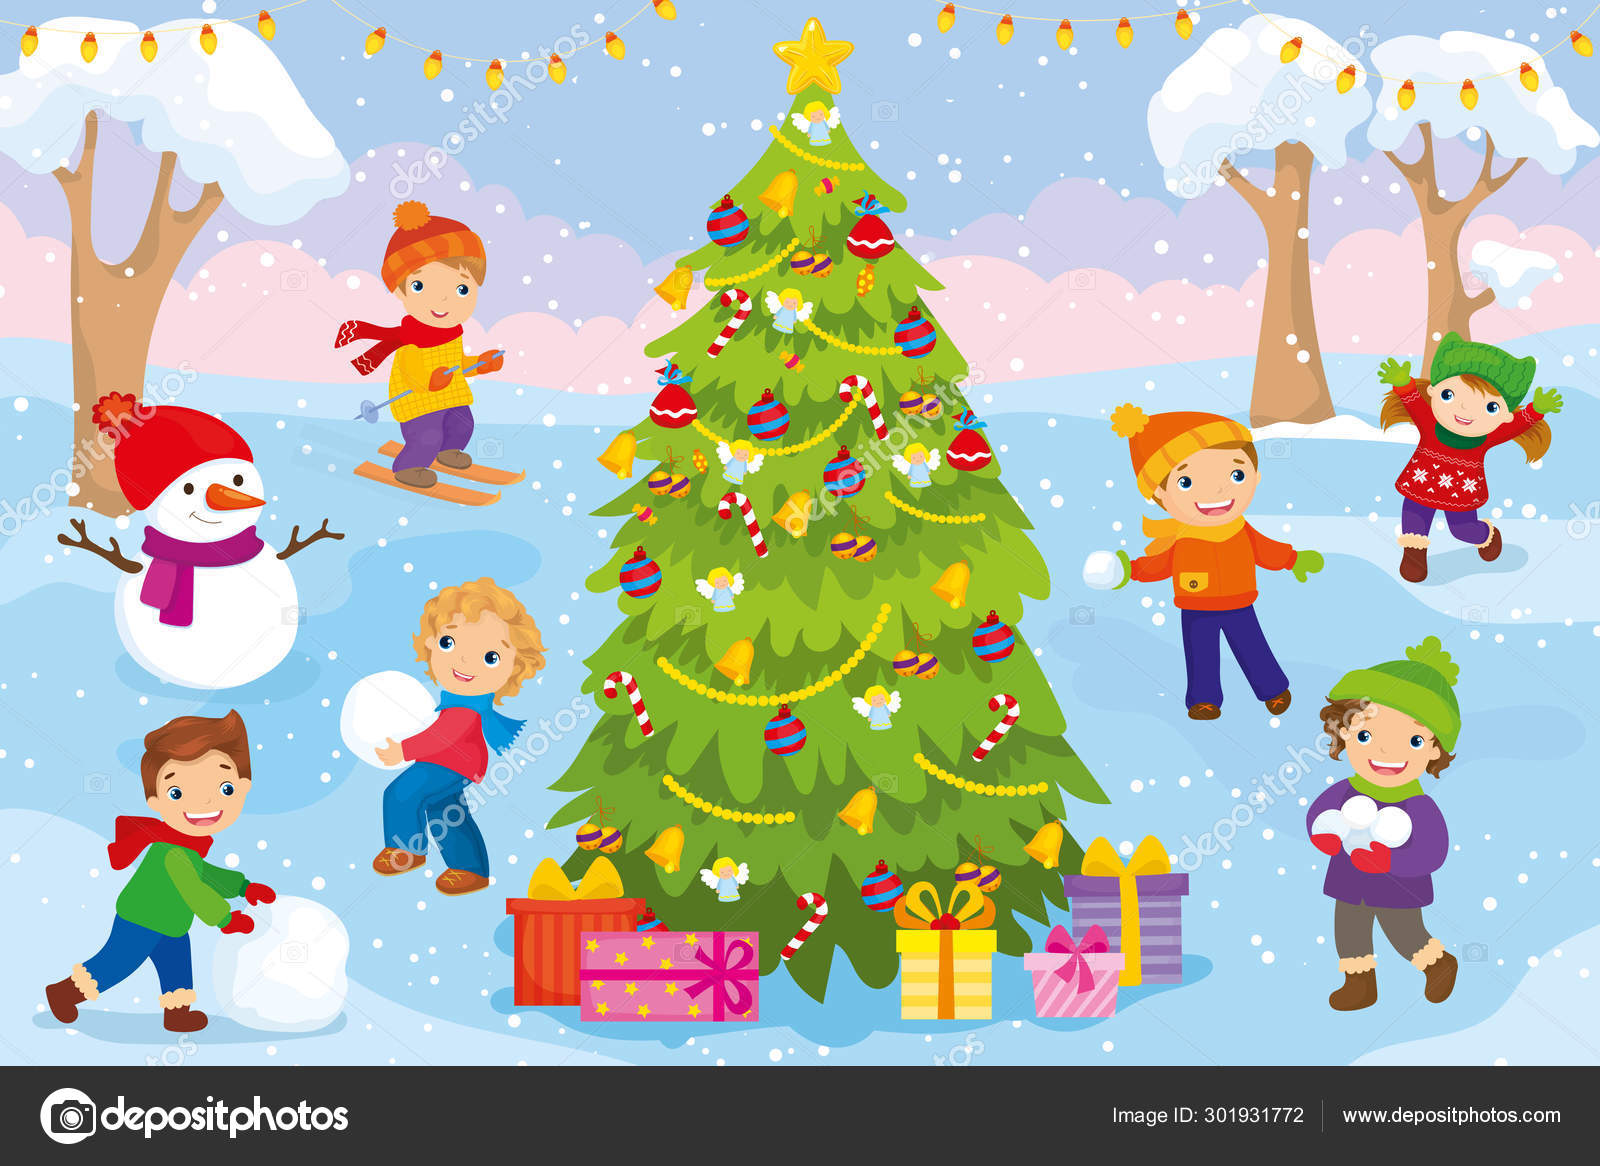 Children Play With Snow Outside Christmas Tree Stock Vector C Ingasmk 301931772 Illustration about cartoon forest trees, bushes, hedges and rocks. children play with snow outside christmas tree stock vector c ingasmk 301931772